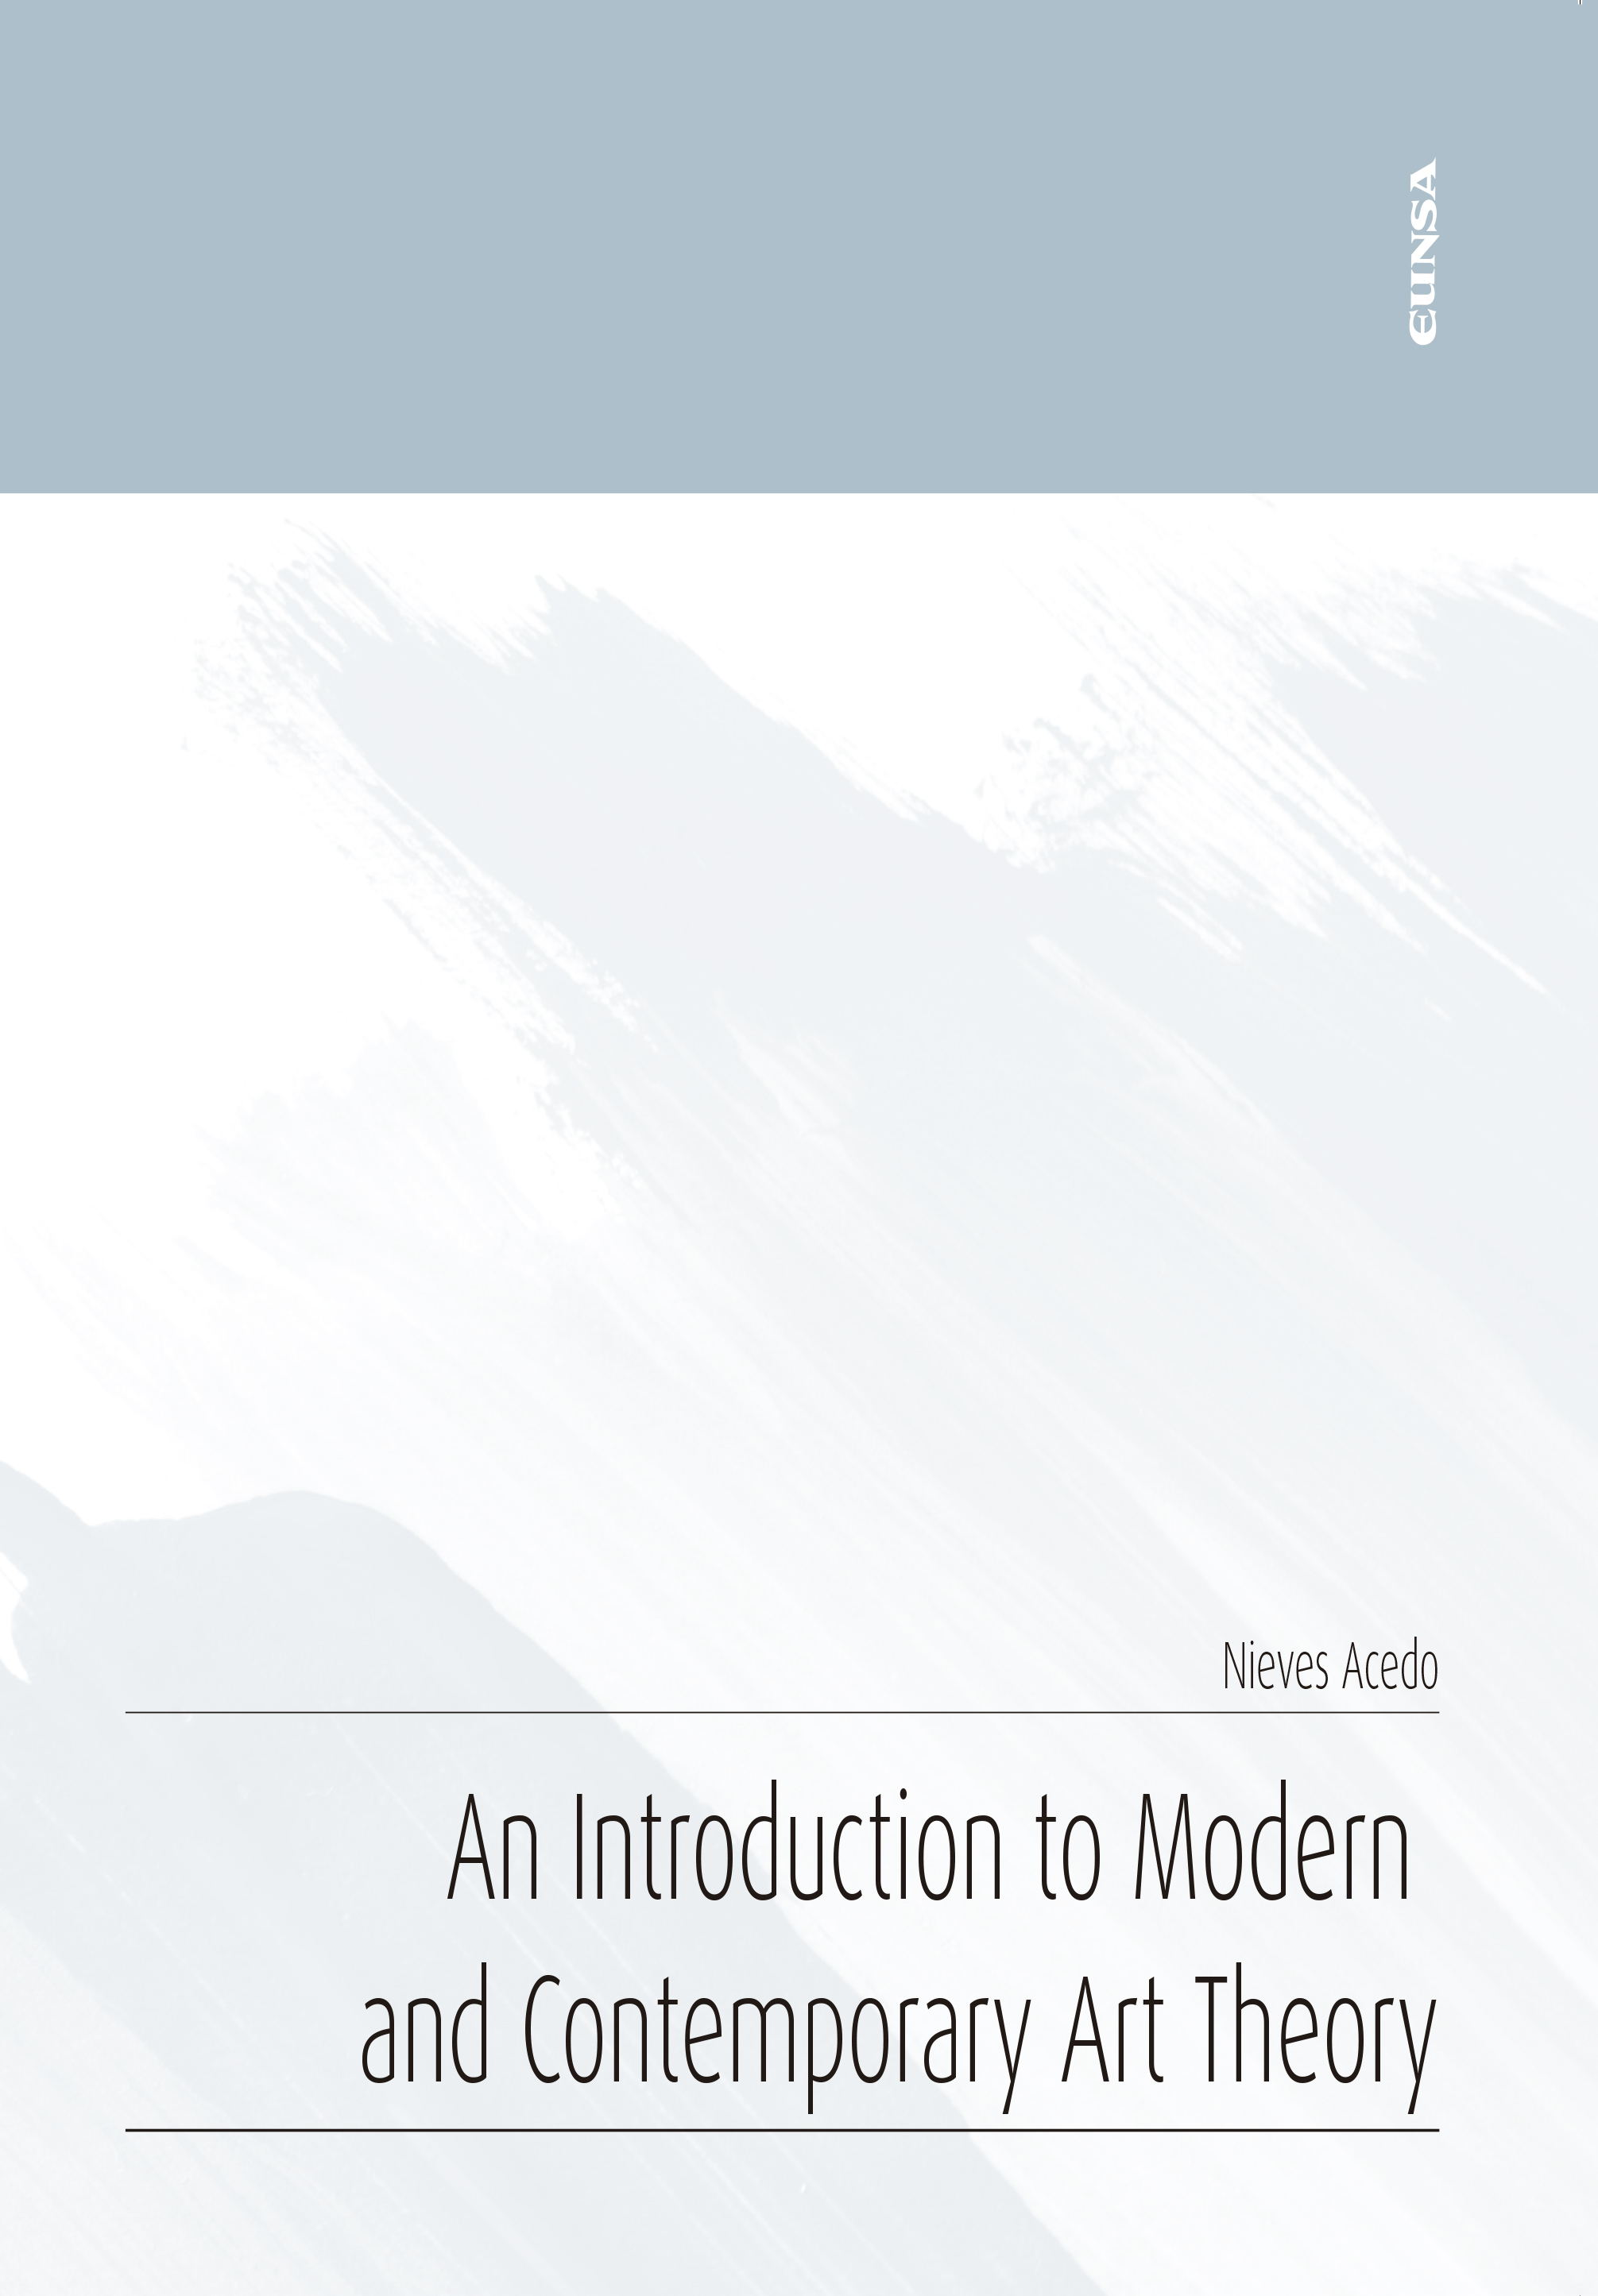 An Introduction to Modern and Contemporary Art Theory (9788431335182)